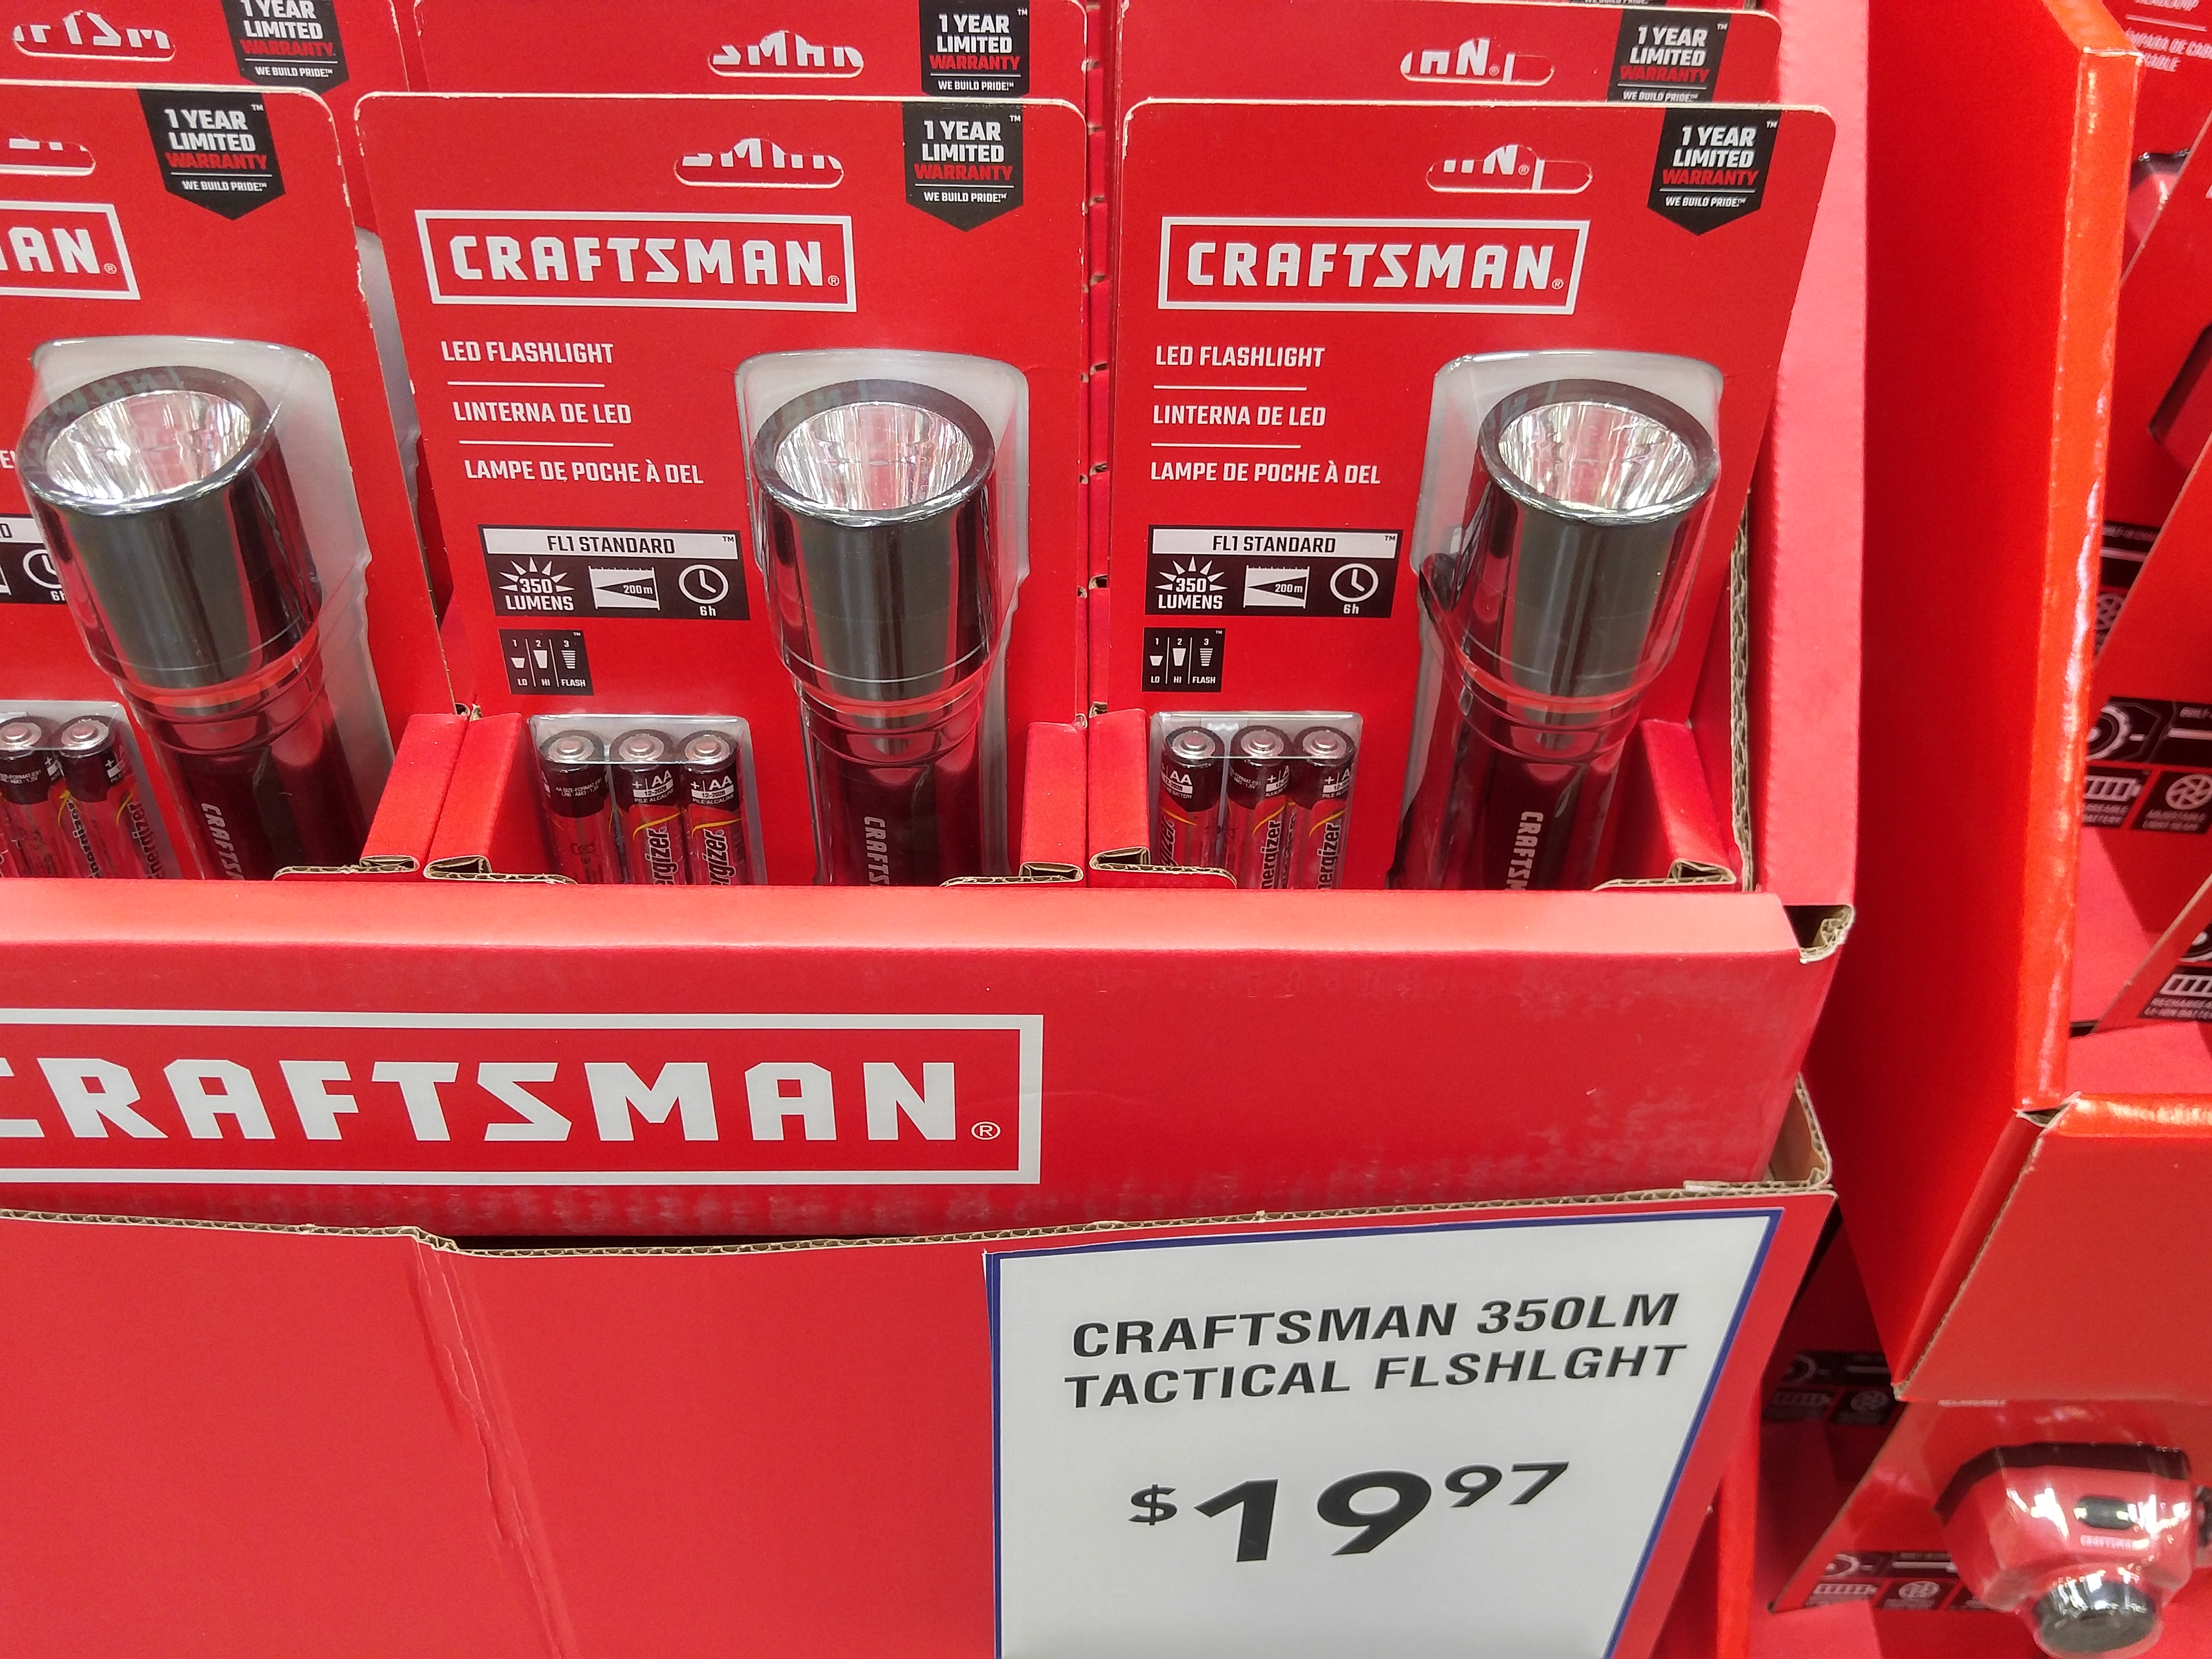 Found Craftsman Tool Box Flashlights At Lowes During Recent Trip Soft Start For Flash Lights They Had A 52 Inch Steel Set And Few The Were Interesting But Nothing Amazing There Three One